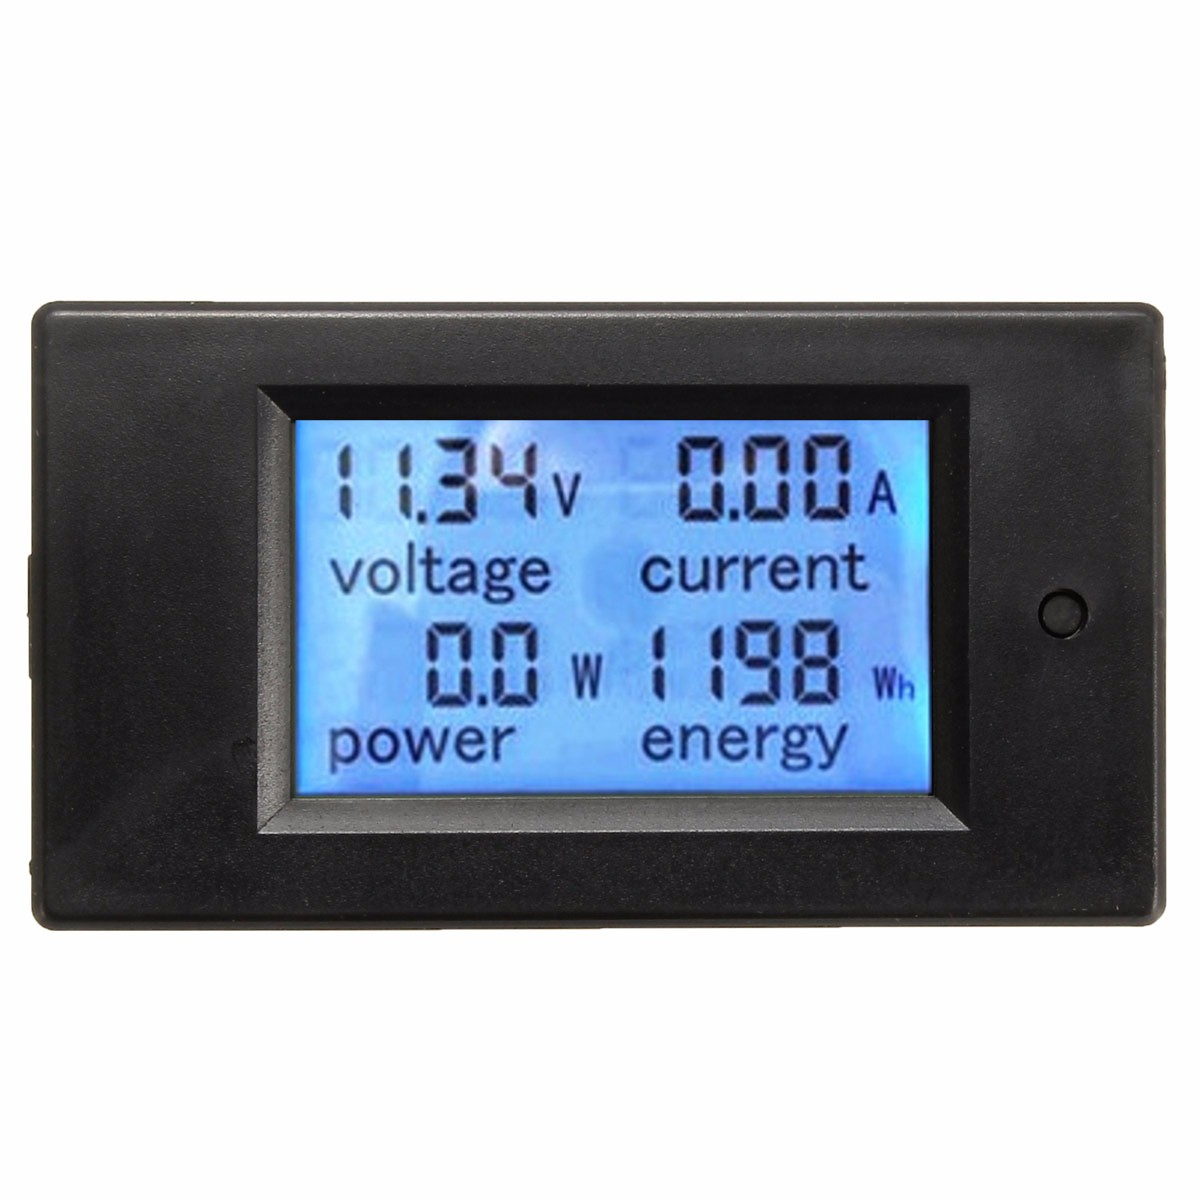 DC 100A LCD Voltage Current Meter Car Battery Panel Power Monitor With Shunt